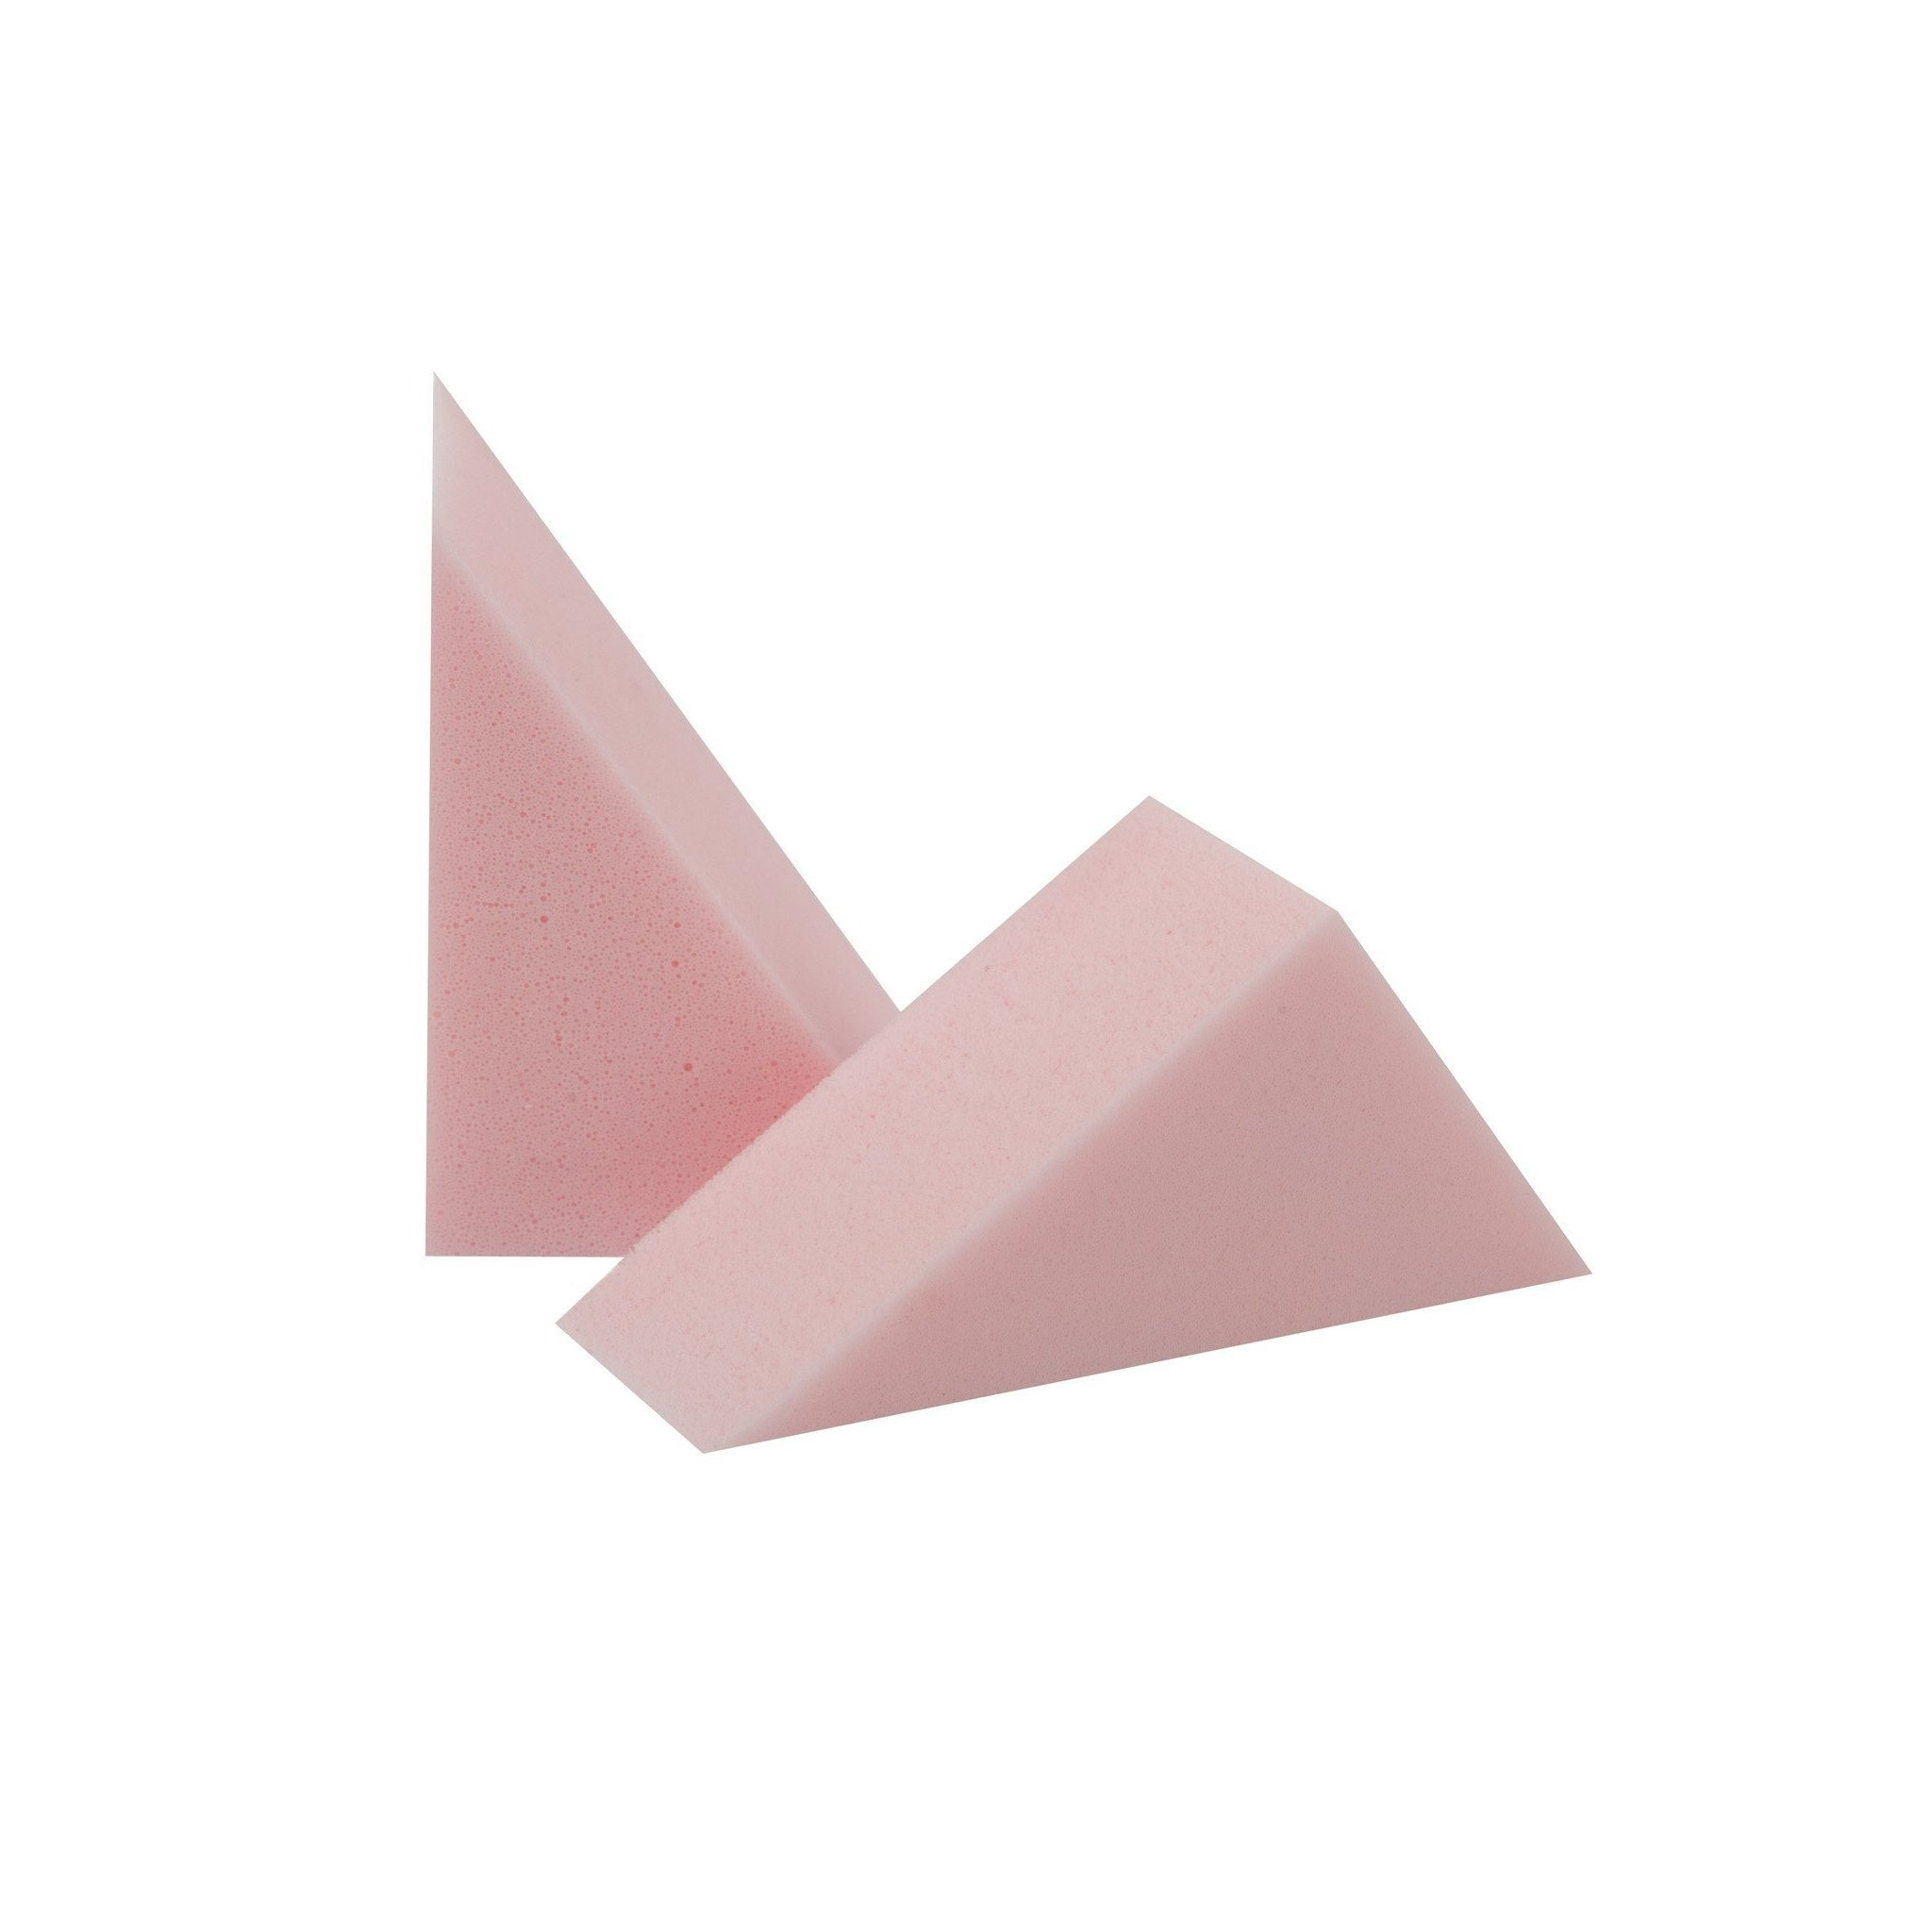 INGLOT Triangle Sponge Applicator